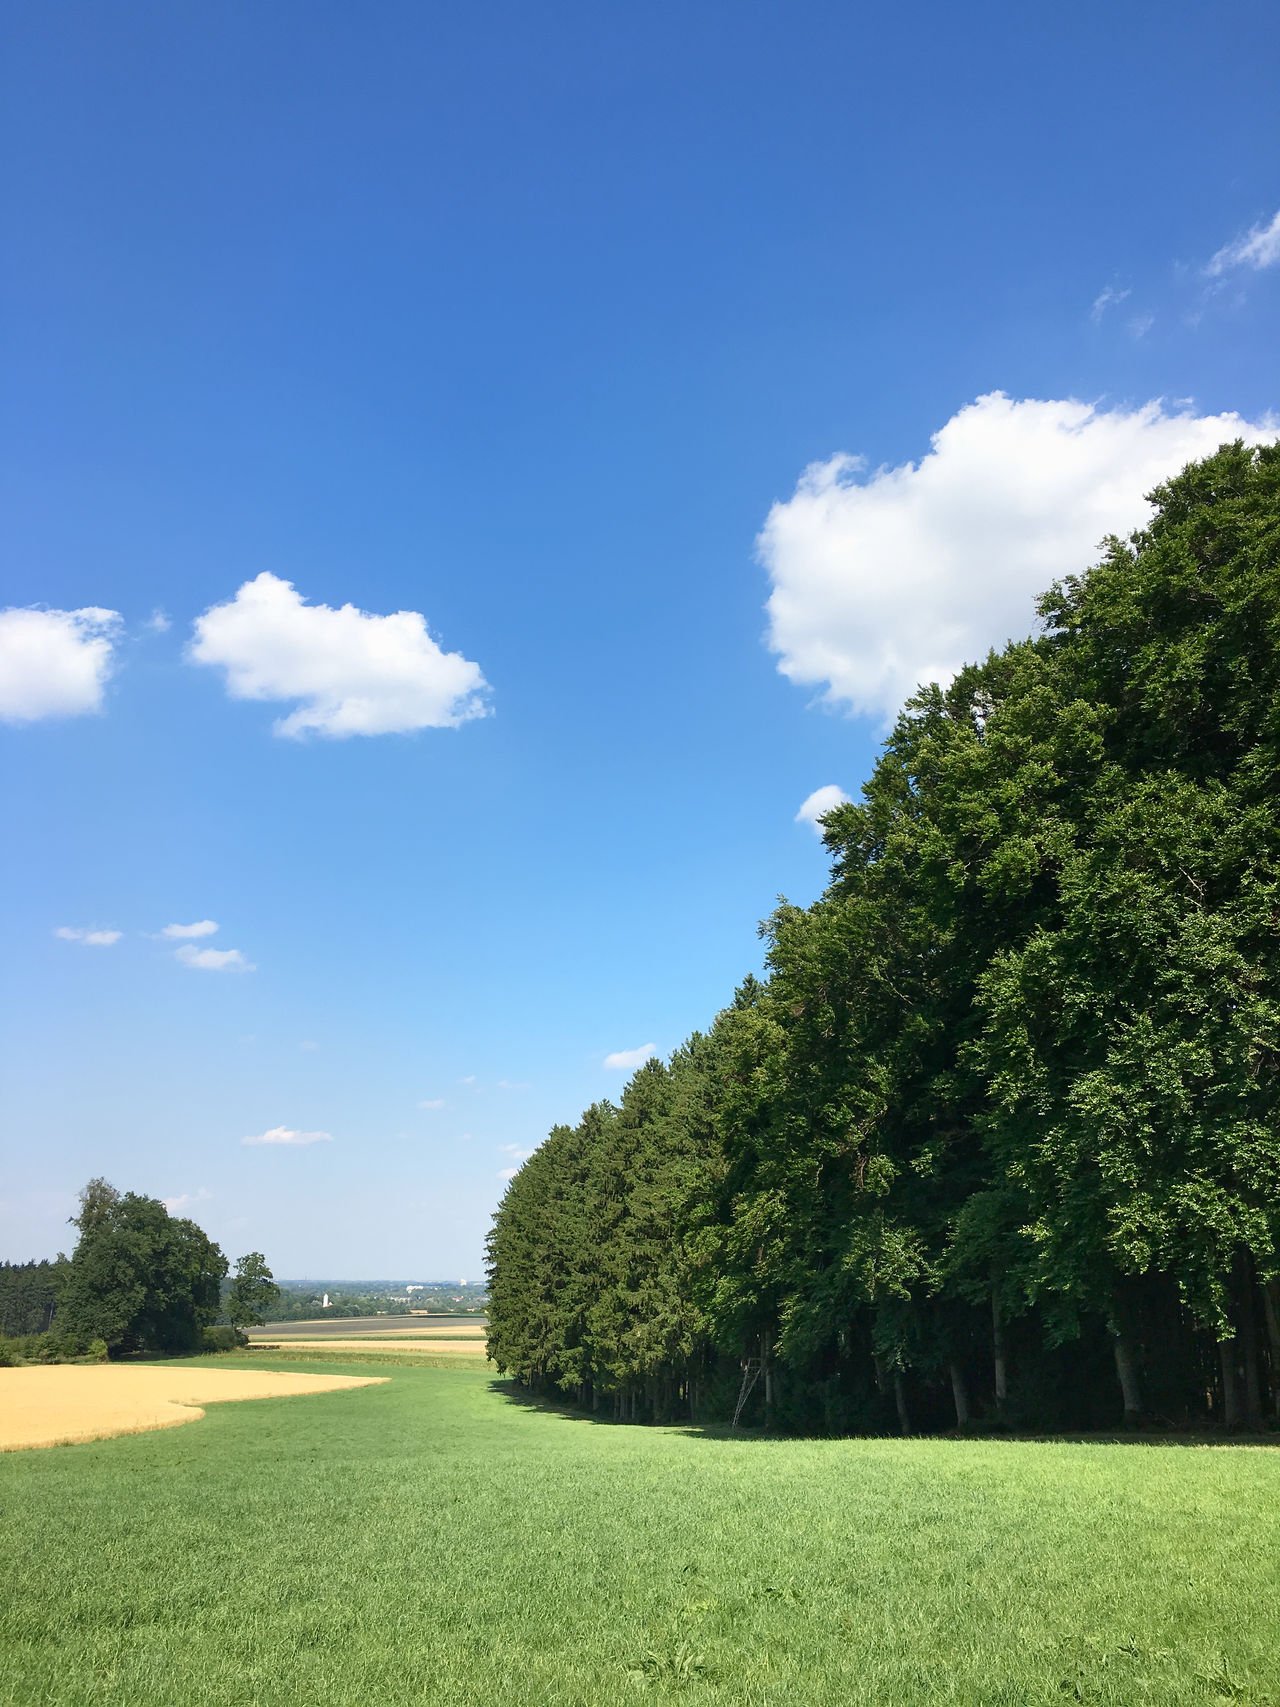 Wald-Wiese-Himmel Bavaria Beauty In Nature Blue Cloud - Sky Day Field Freshness Grass Green Color Growth Landscape Nature No People Oberbayern Outdoors Scenics Sky Sunlight Tranquil Scene Tranquility Tree Weissblau Weiß Und Blau